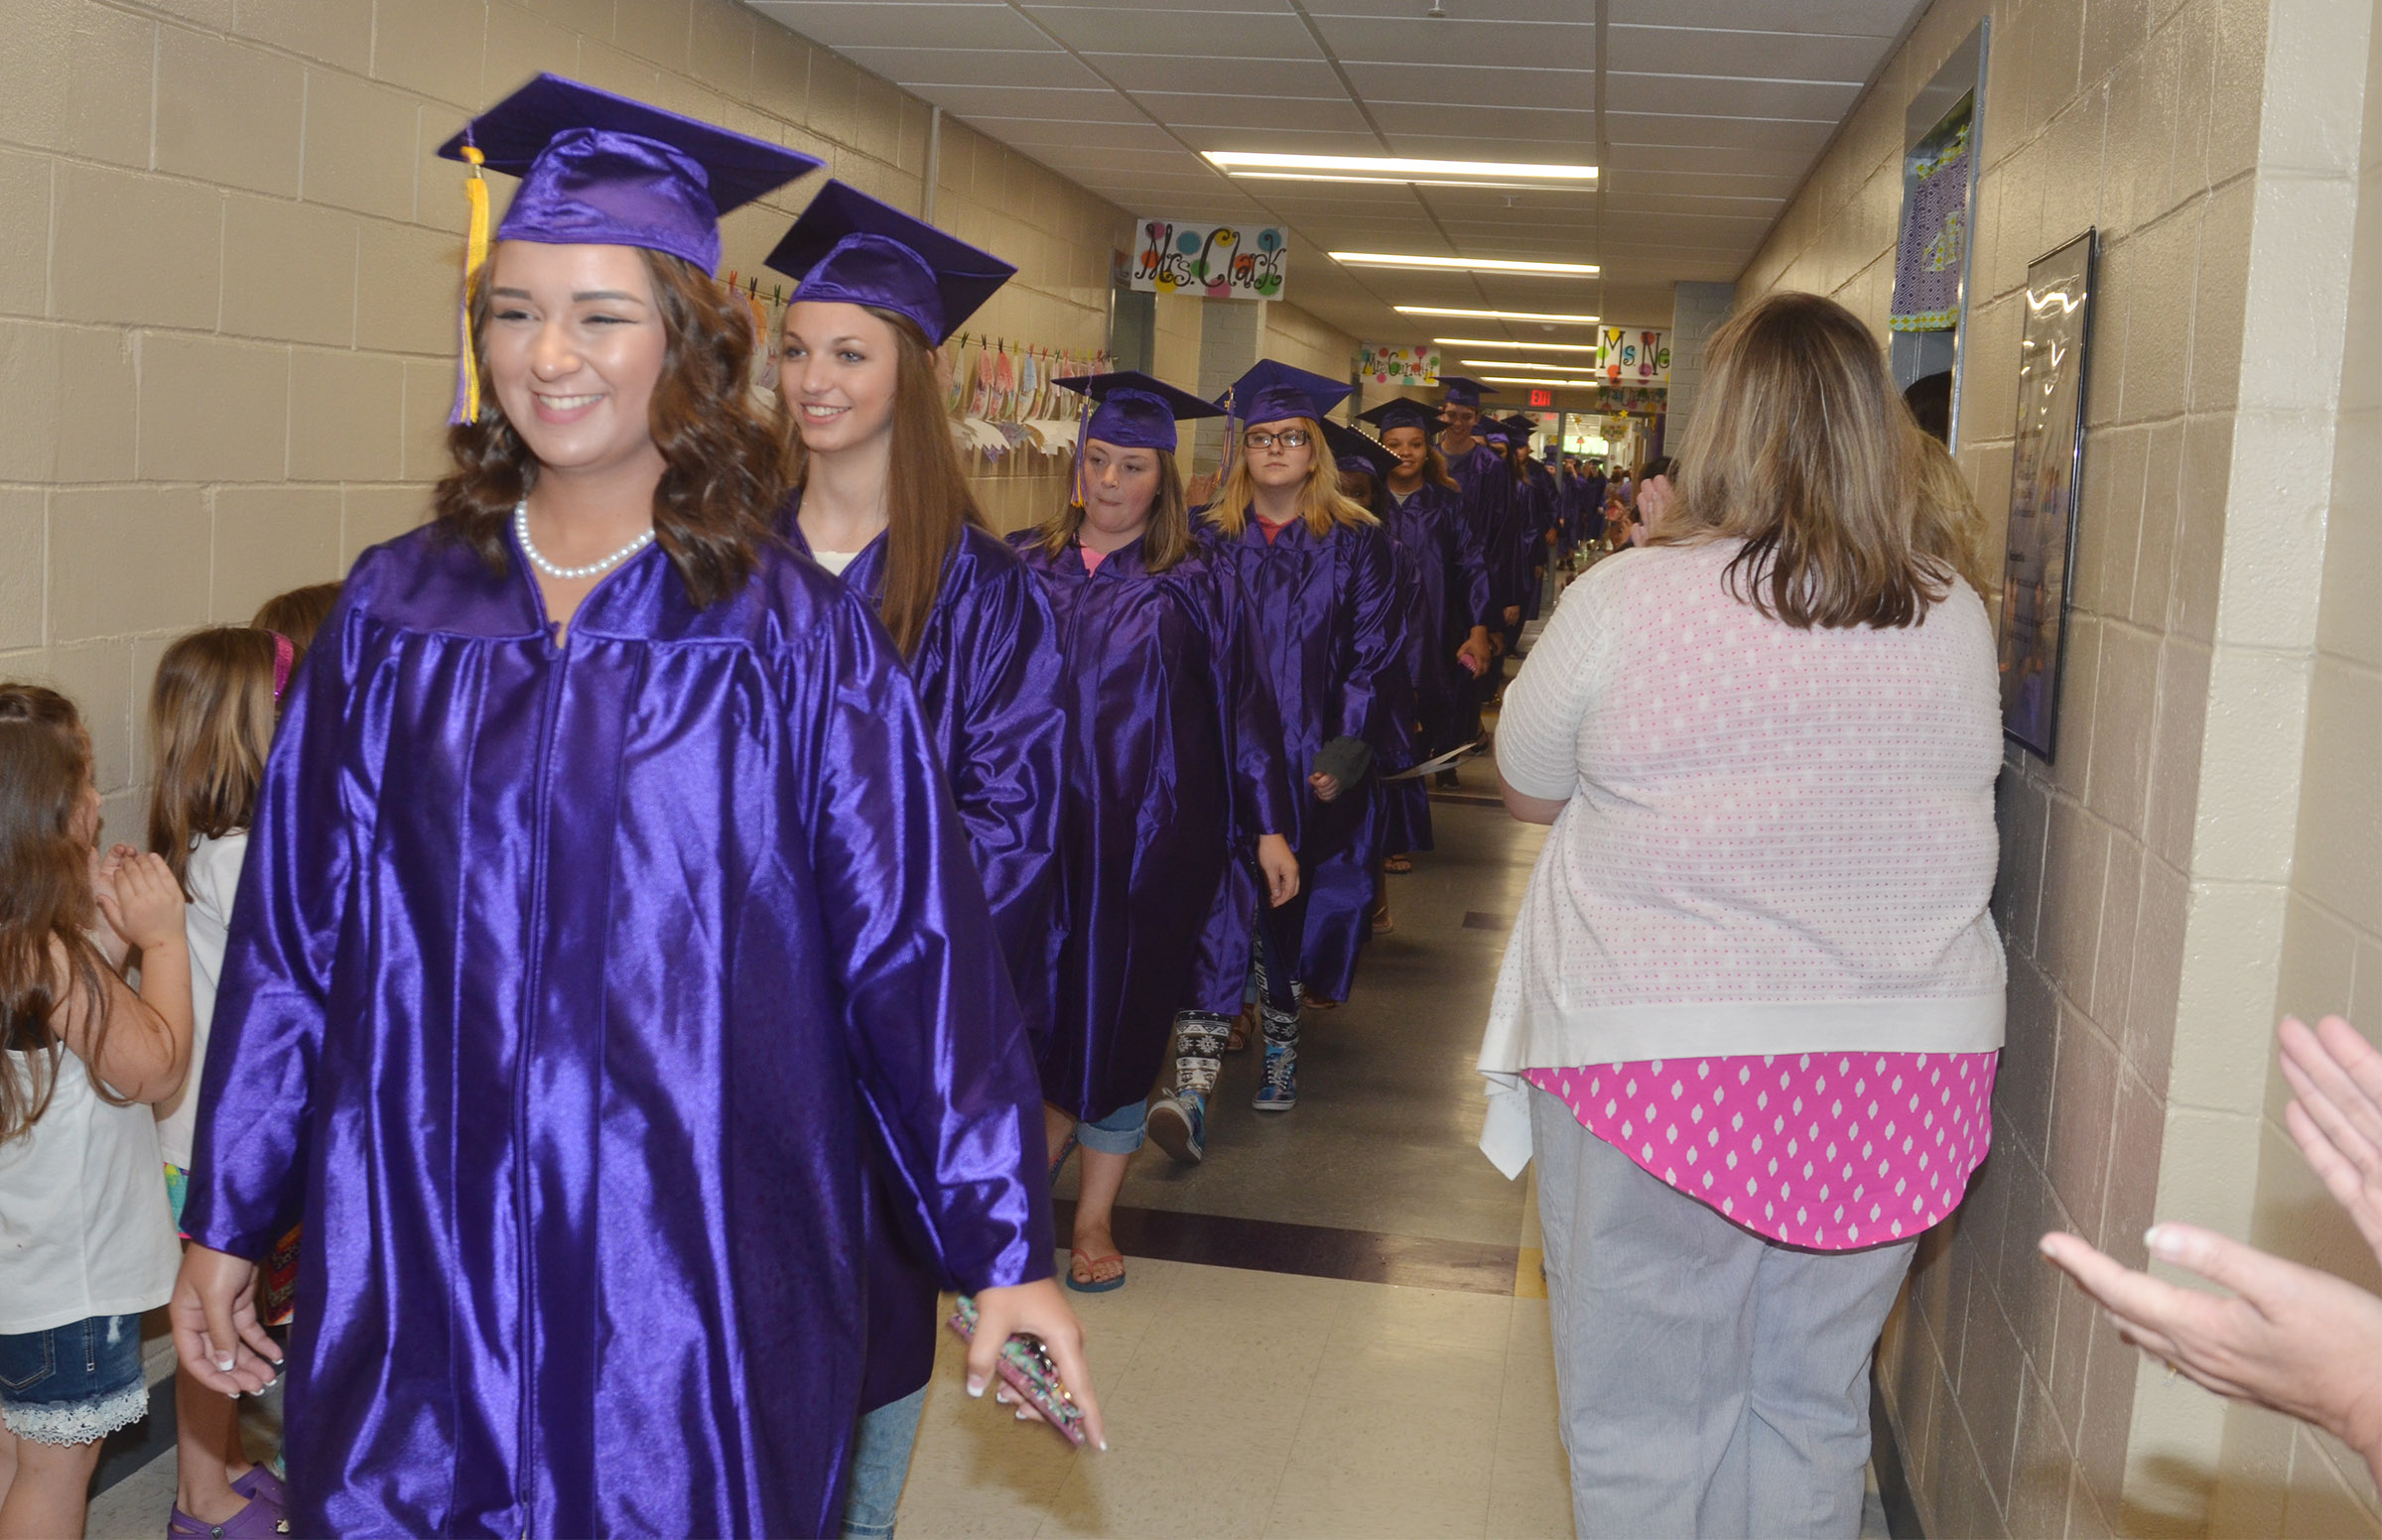 CHS senior Kailey Morris and her classmates walk down the hallways at CES.